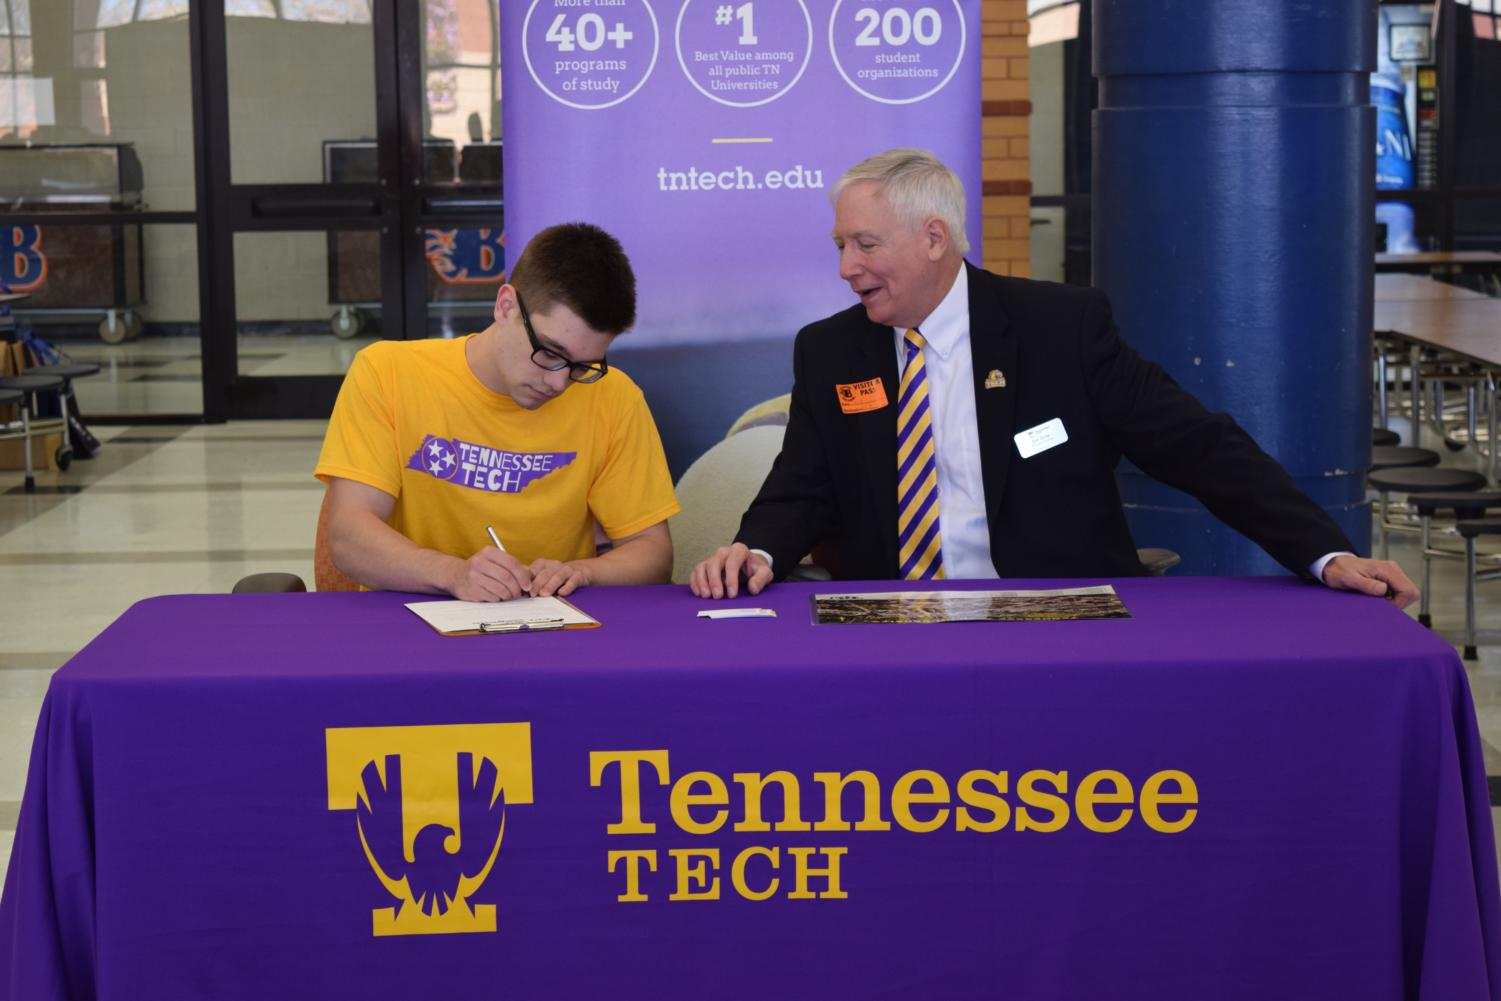 Nathan+Jenkins%2C+Tennessee+Tech